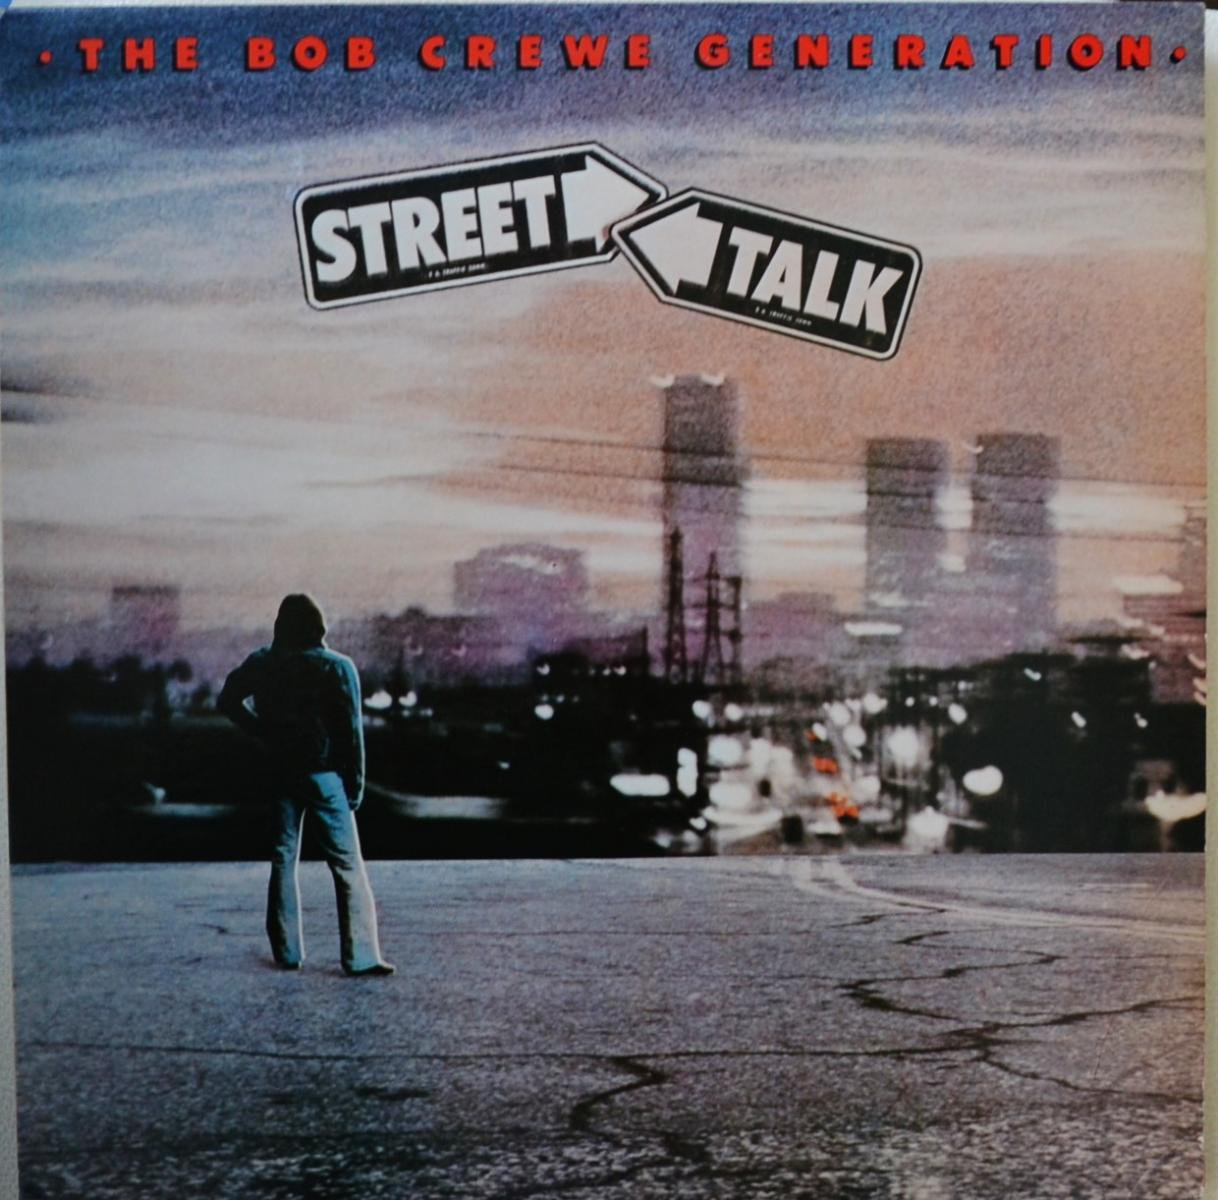 THE BOB CREWE GENERATION / STREET TALK (LP)